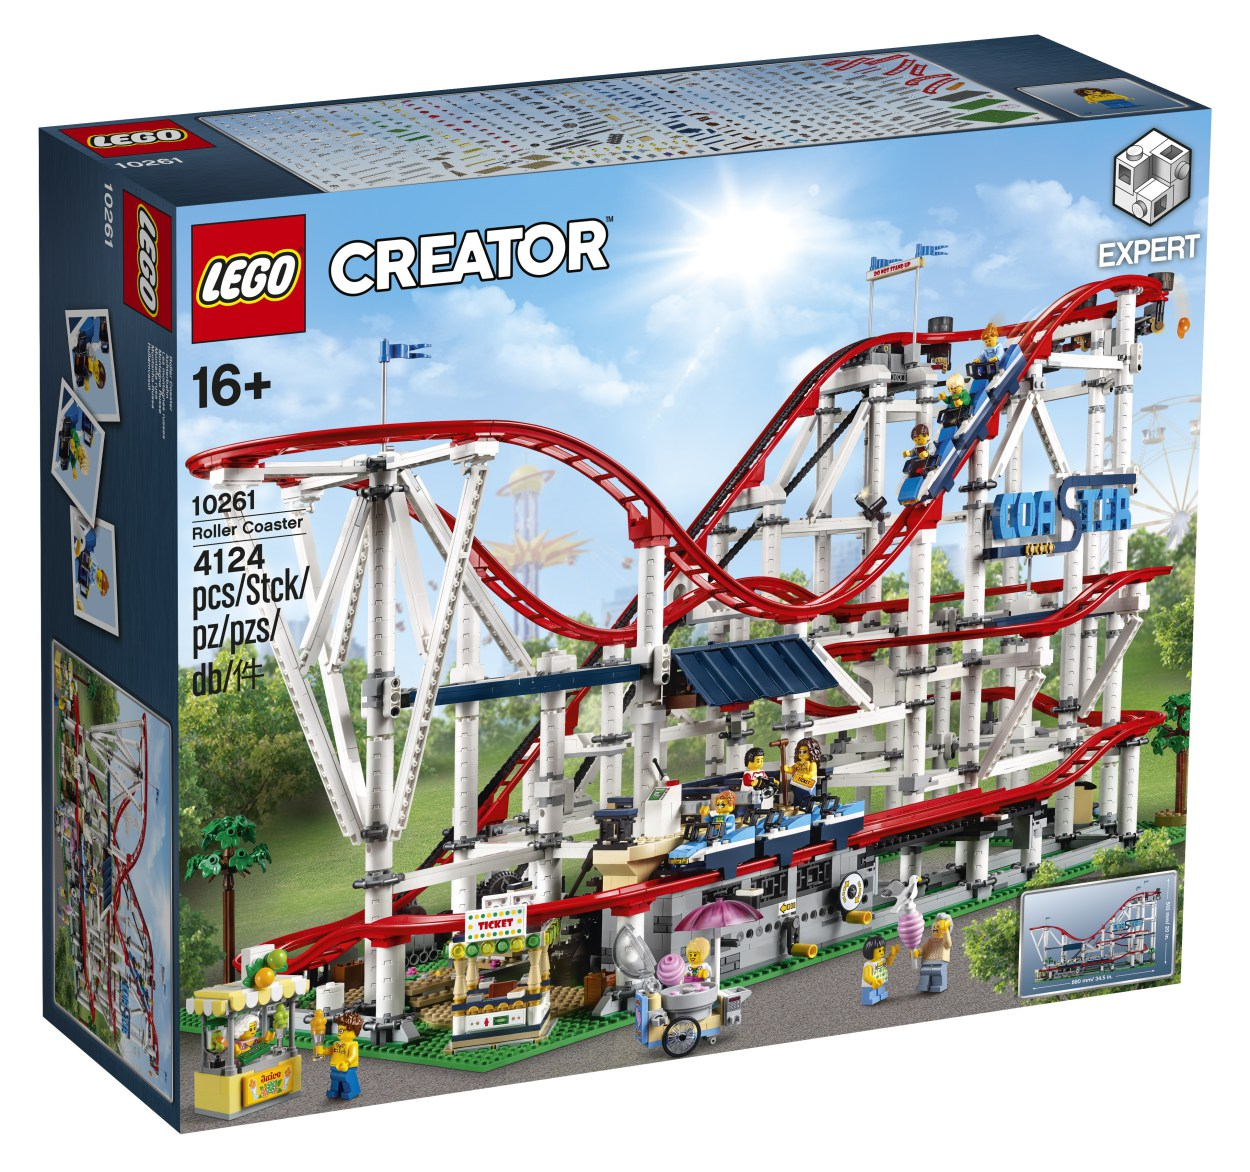 Build a fully functioning Roller Coaster with 2 trains, lots of big dips and upgrade options.